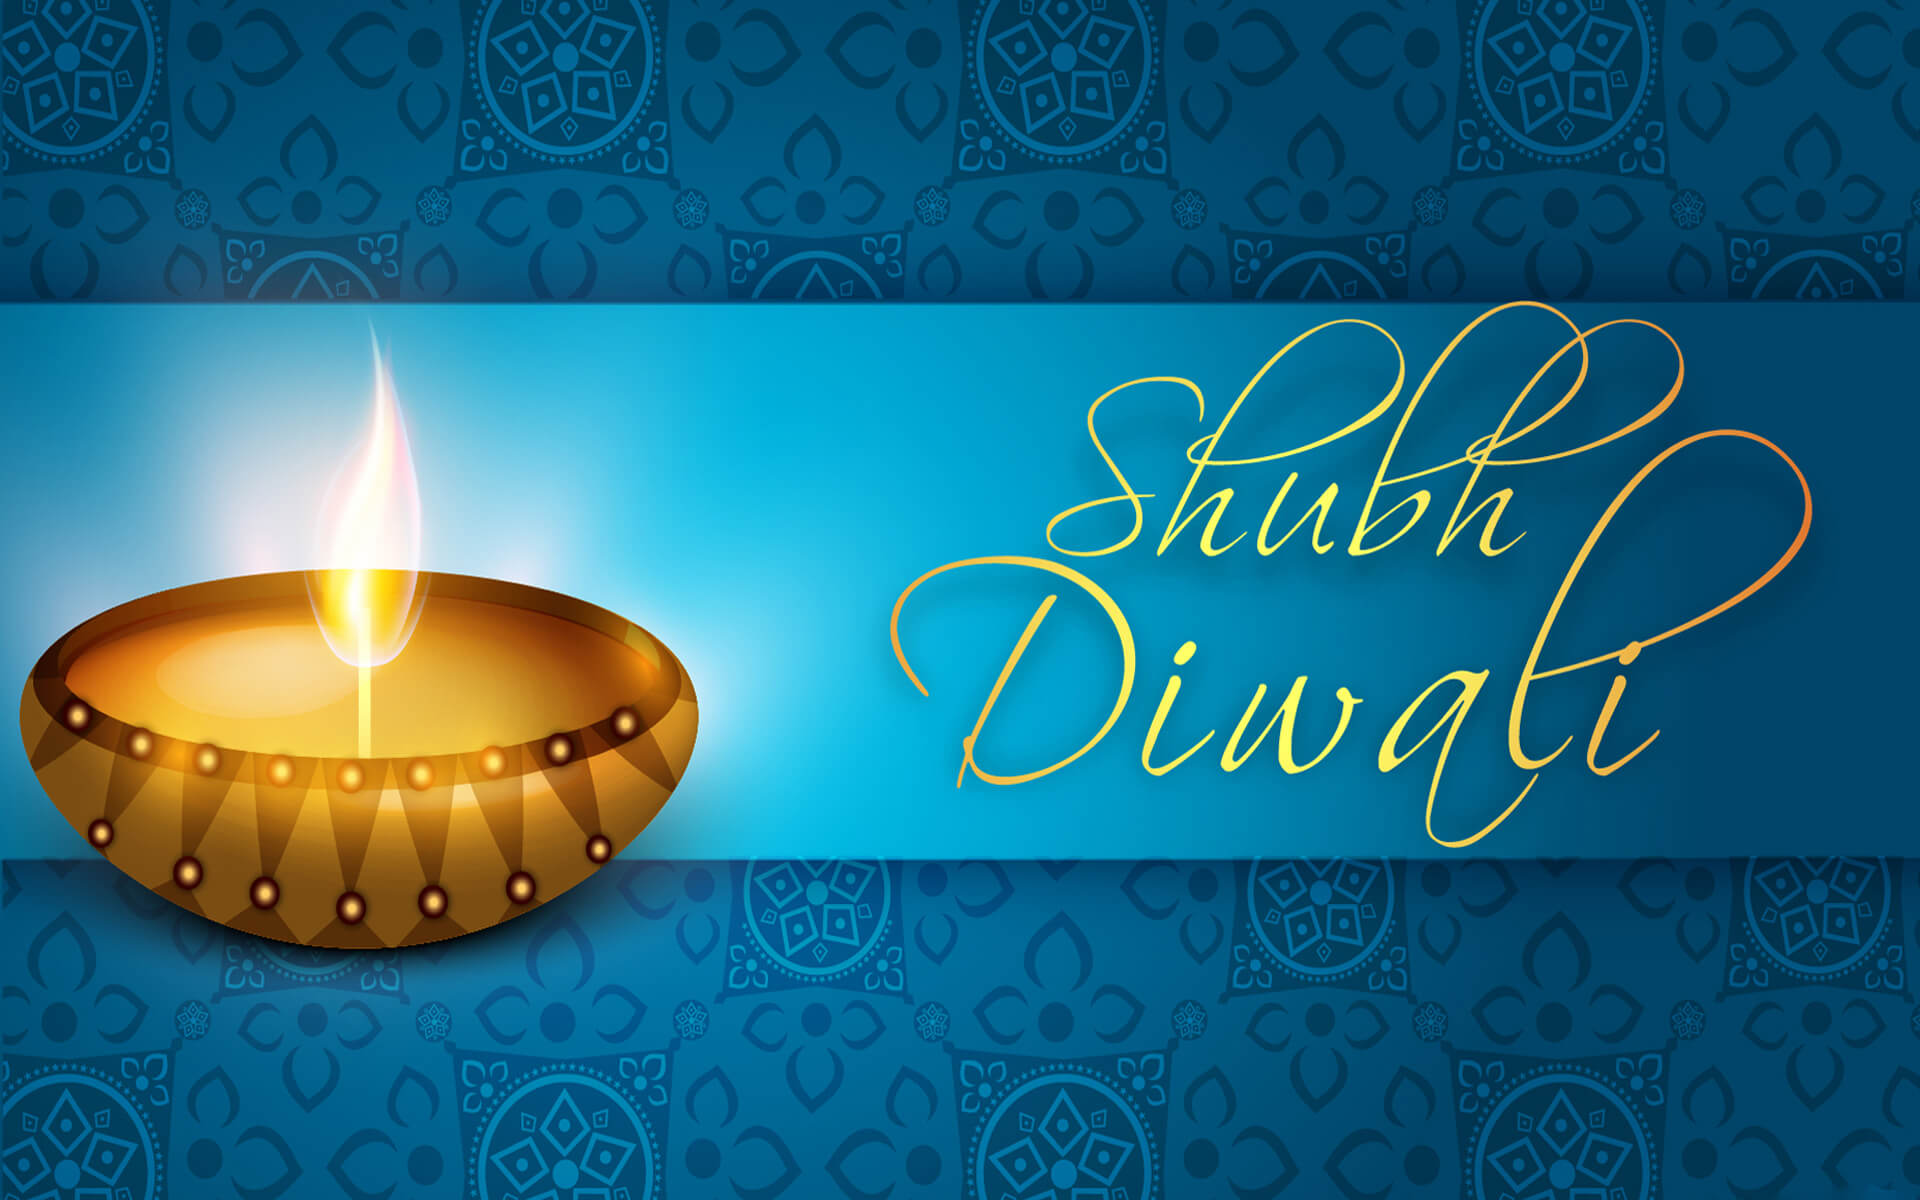 Happy shubh diwali wishes background mobile hd wallpaper m4hsunfo